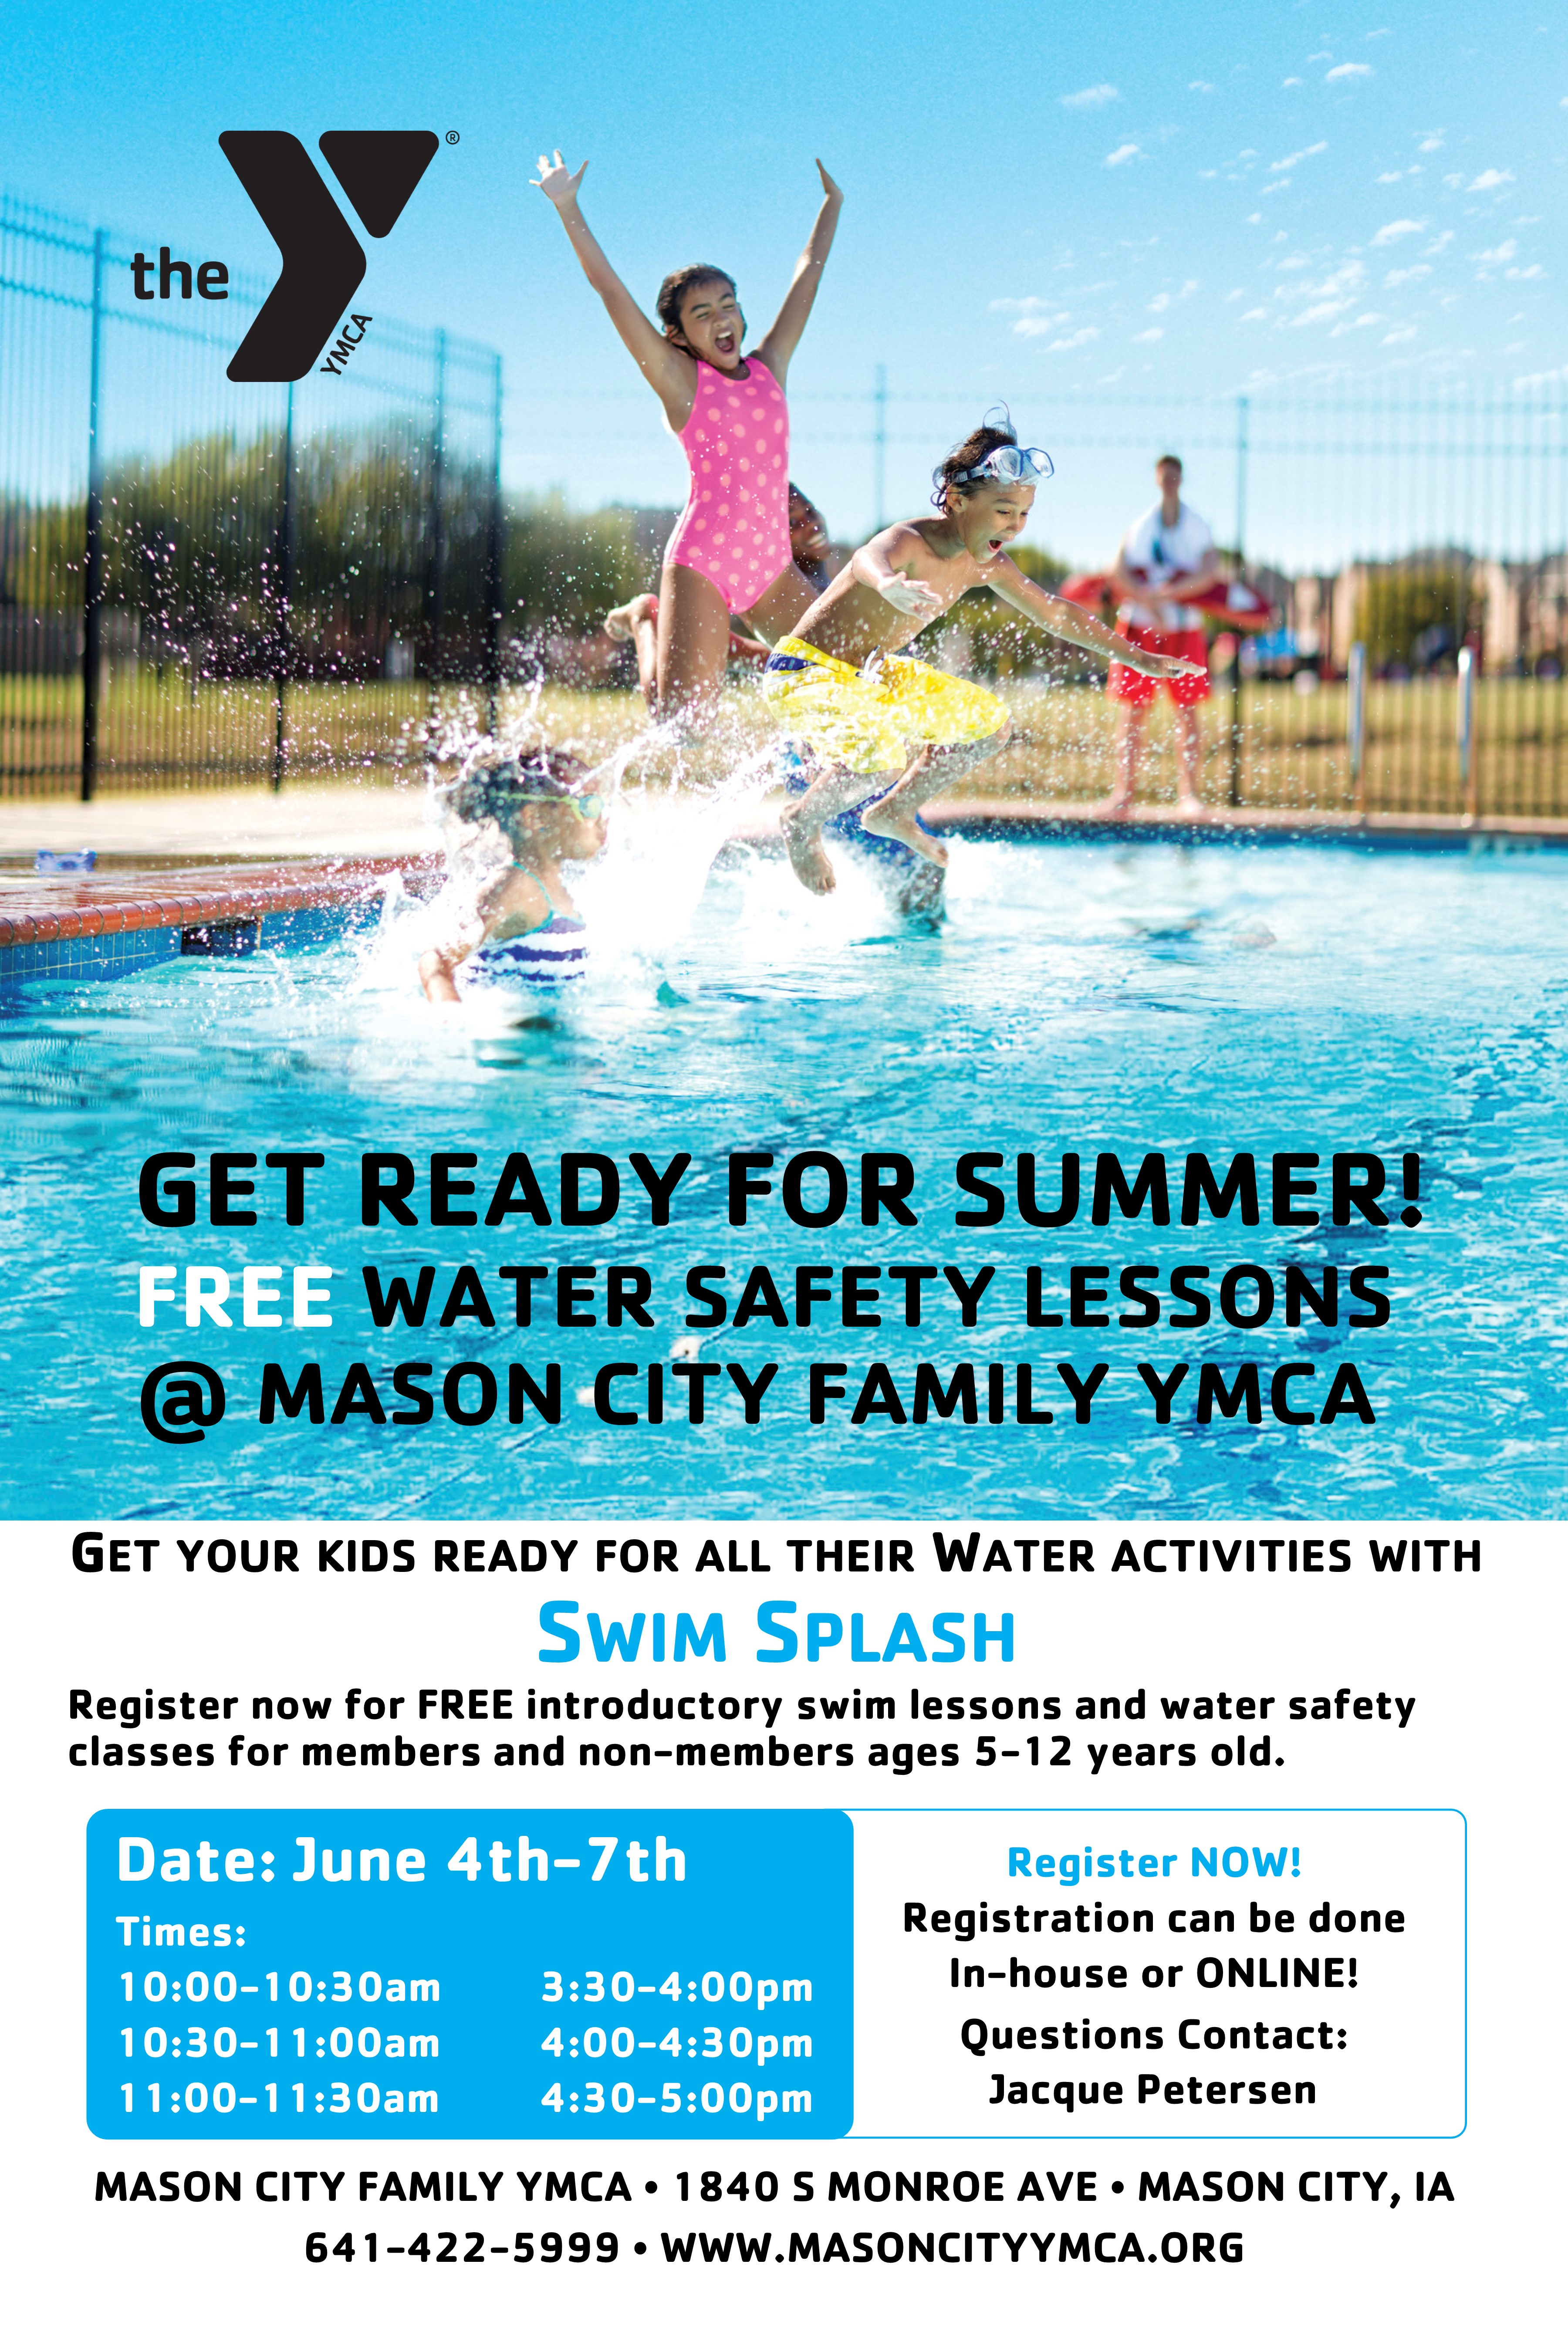 Mason City Family YMCA : Youth Programs : Swimming Lessons : Swim Splash